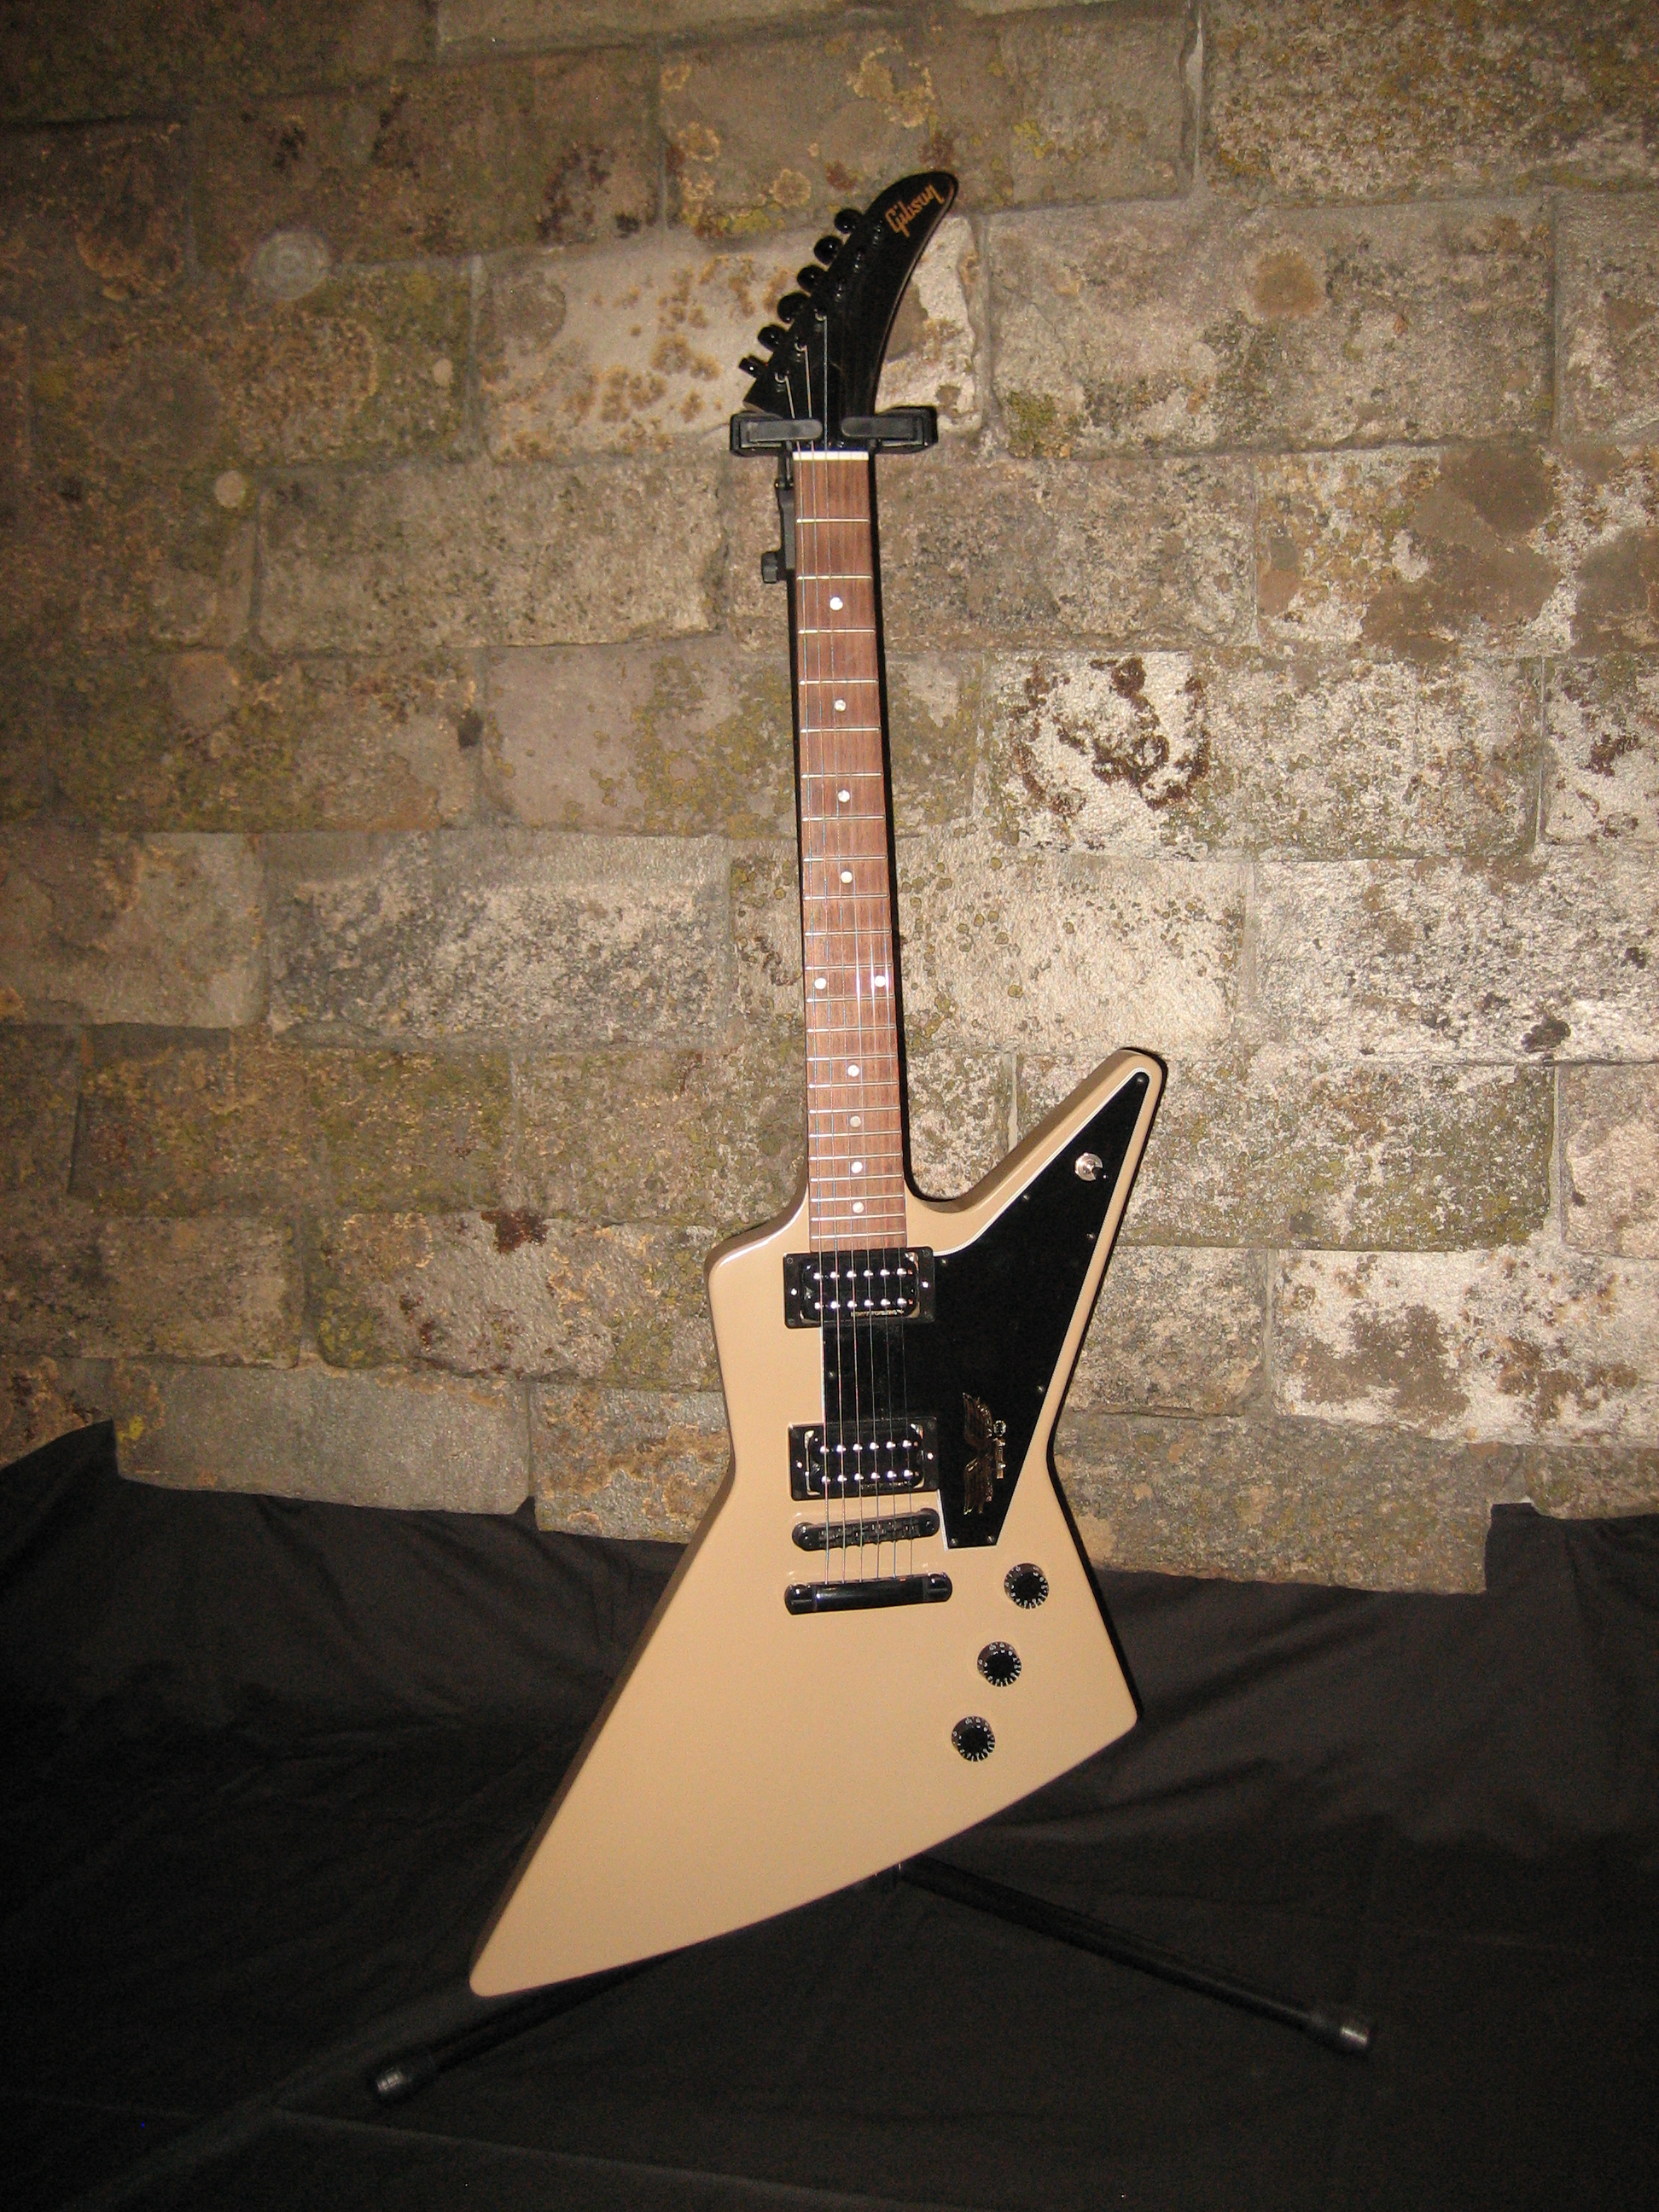 20141112 - Gibson Explorer Government Series II Tan 2013 (4).JPG